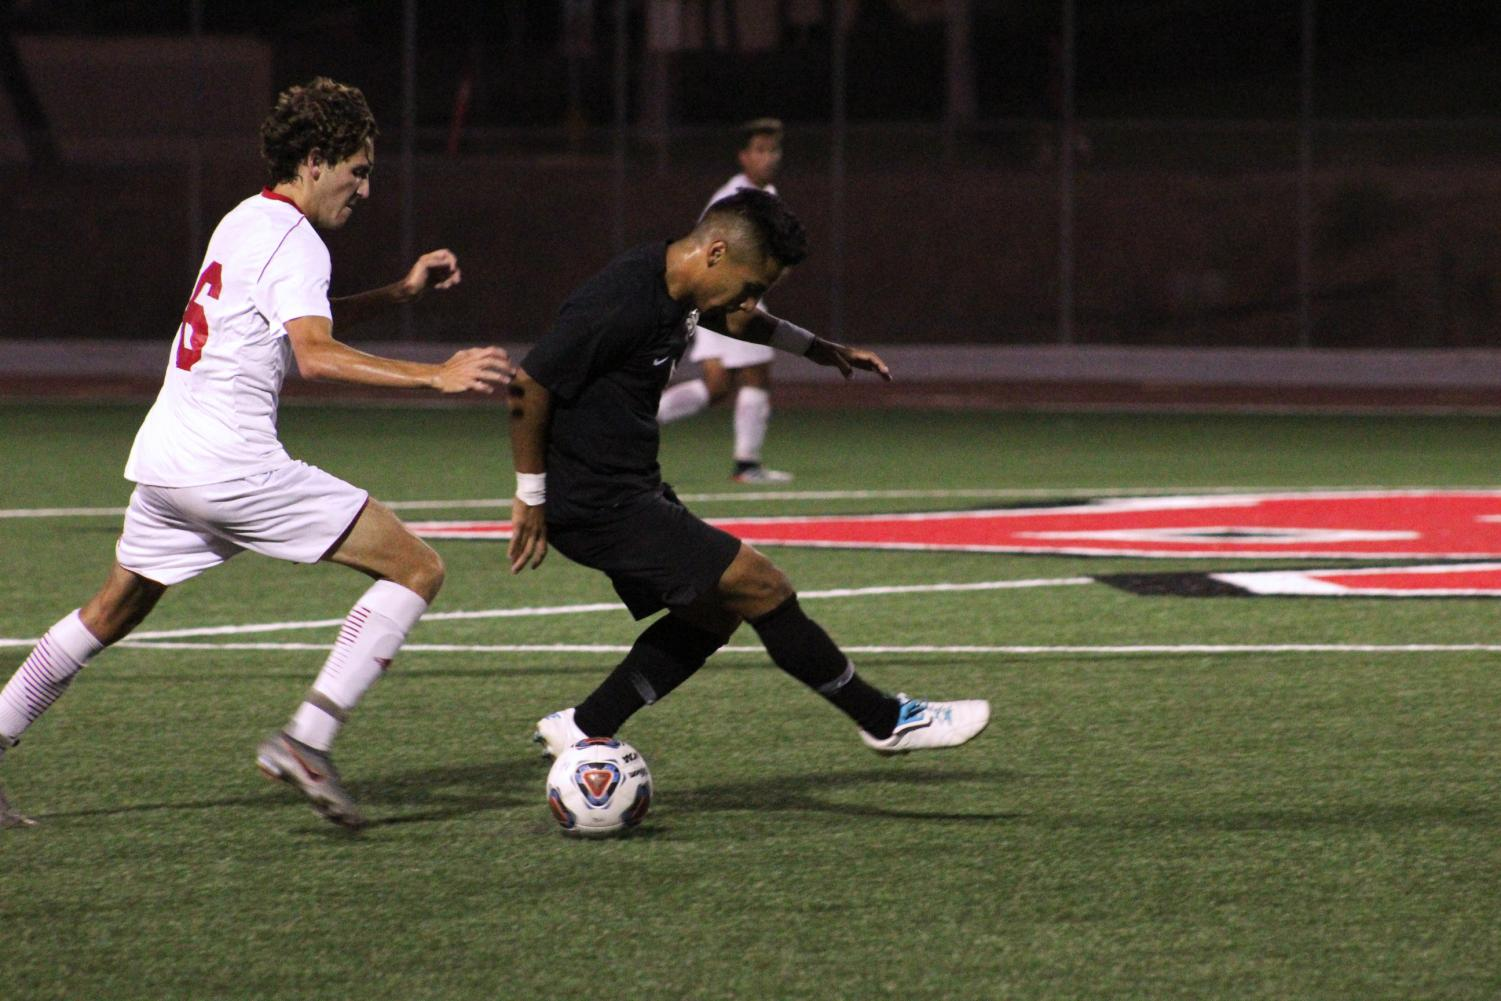 Freshman midfielder Chad Sinclair attempts to steal the ball from his opponent, during the game against California State University San Marcos on September 11, 2019.